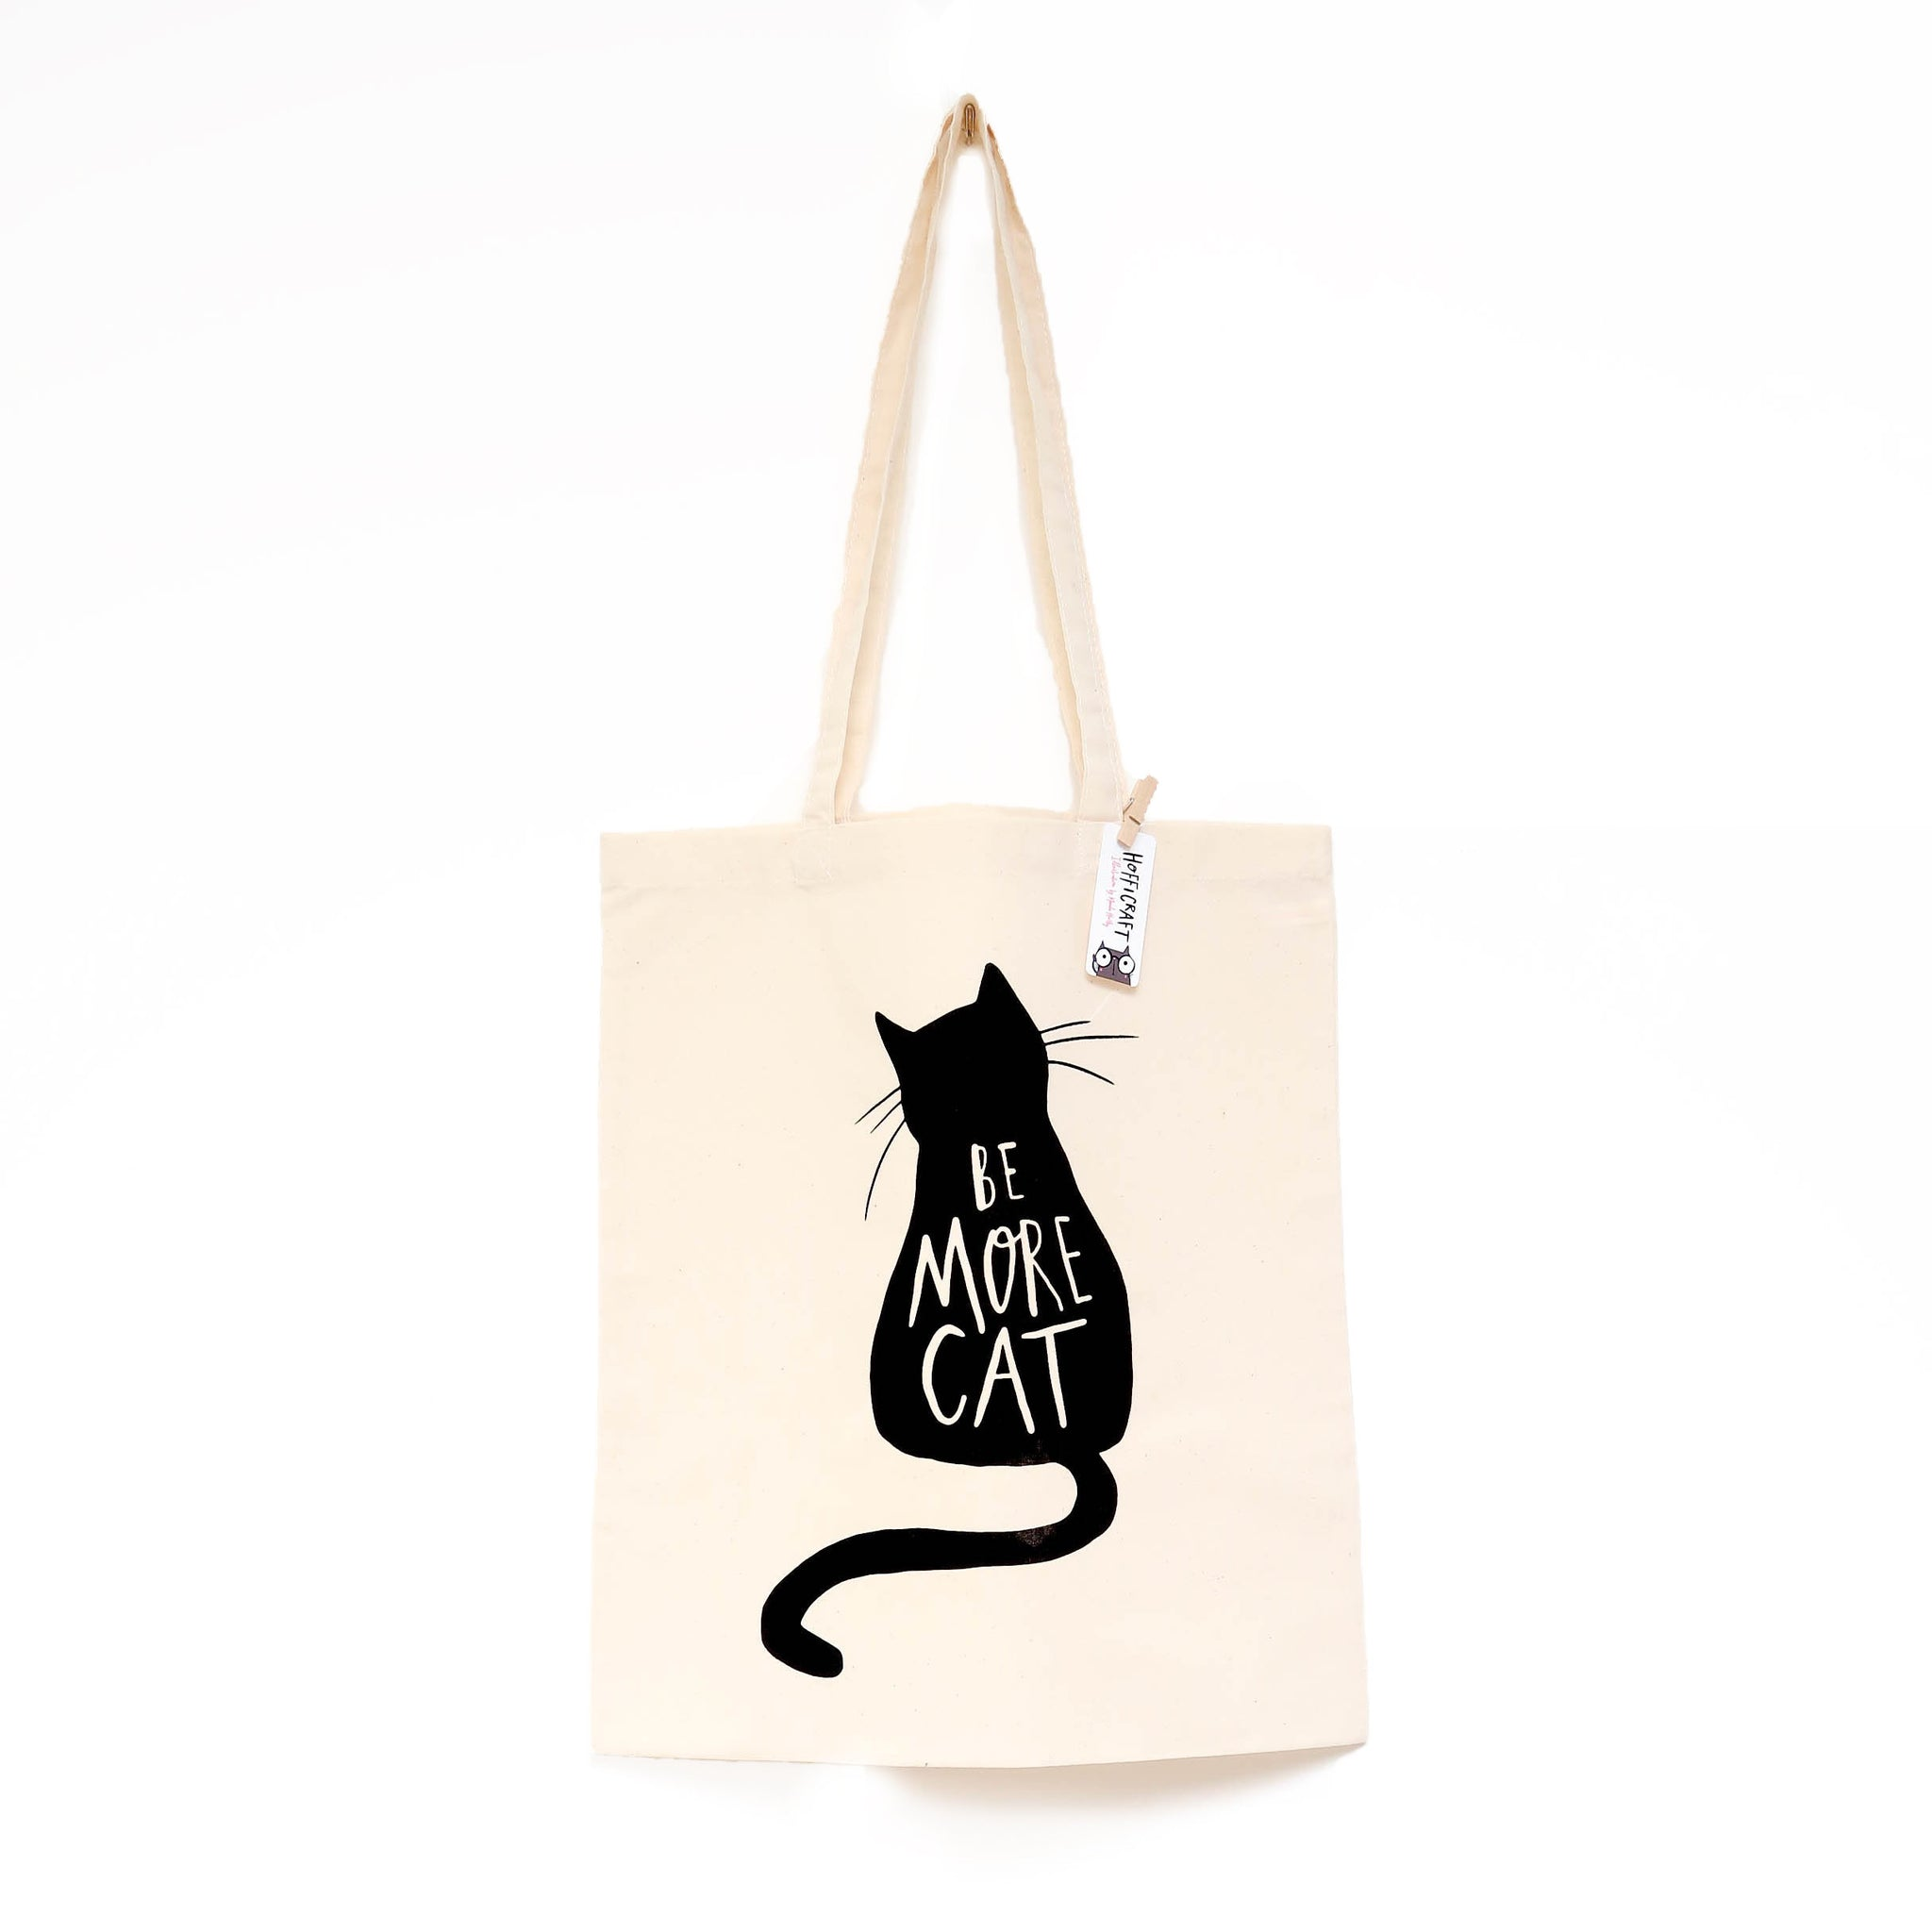 Be more cat tote bag • Cat bag • black cat bag • cat shopper - Hofficraft